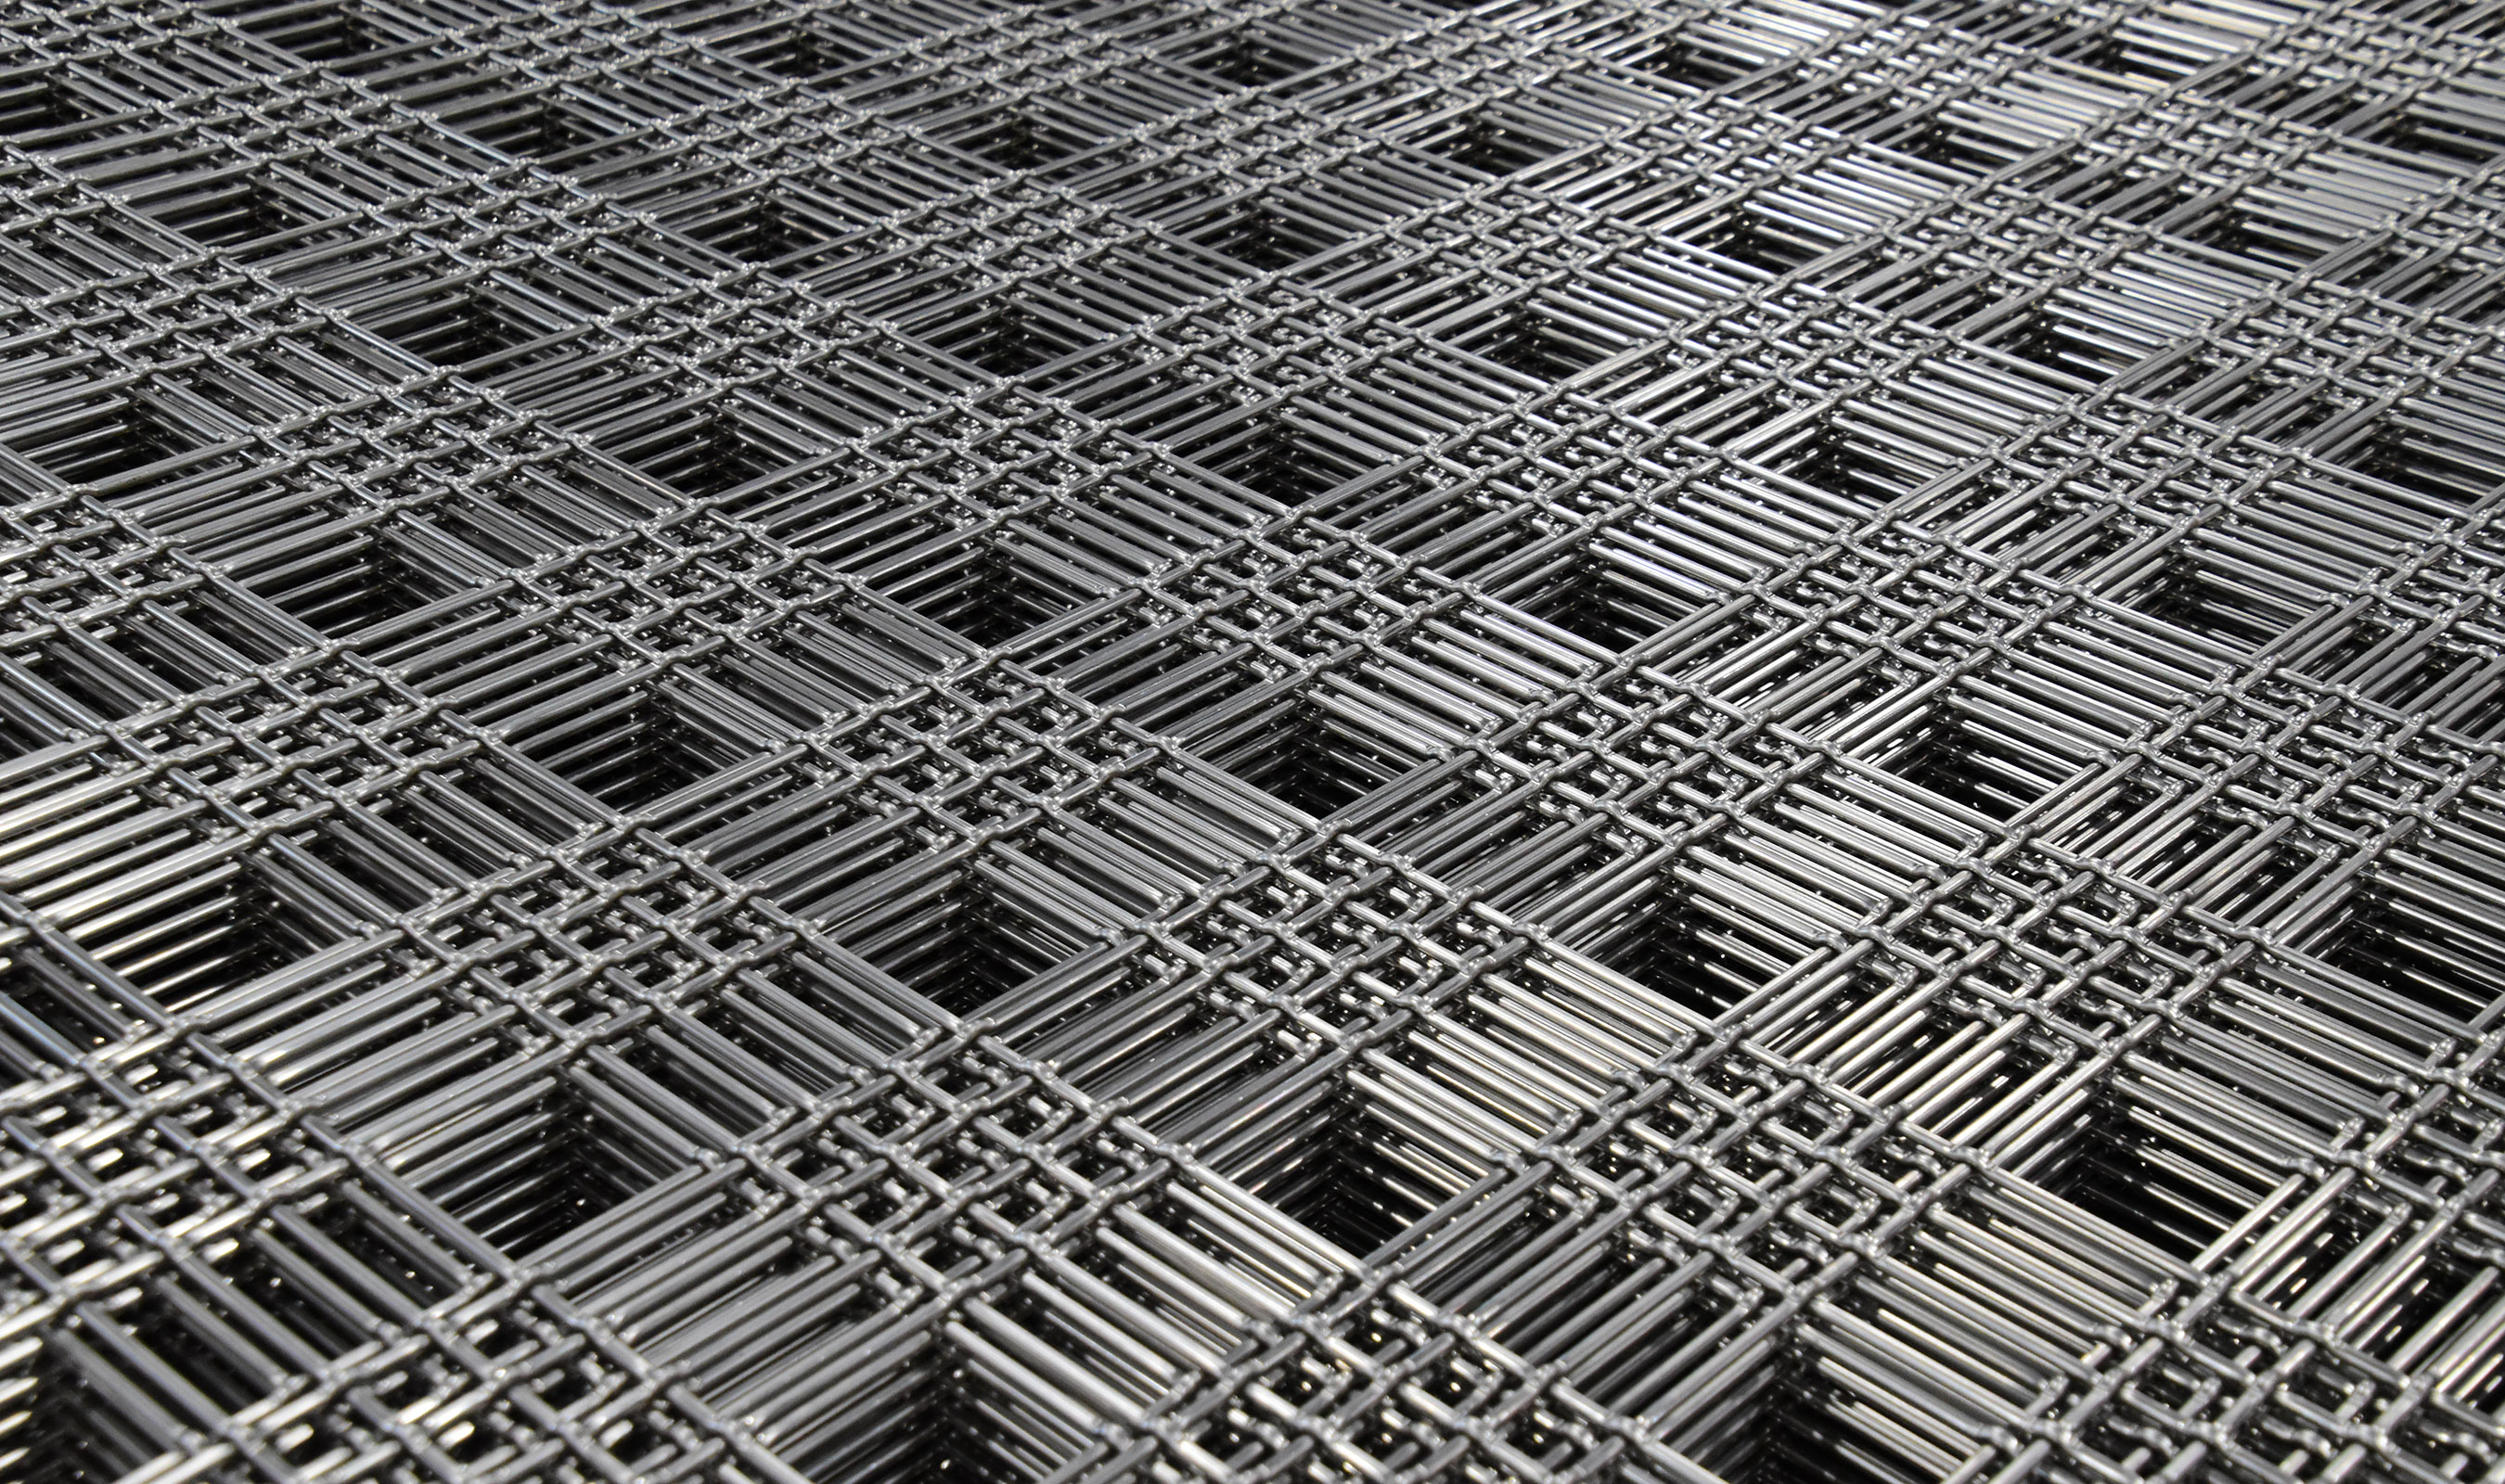 M44-2 aluminum wire mesh pattern from the production floor